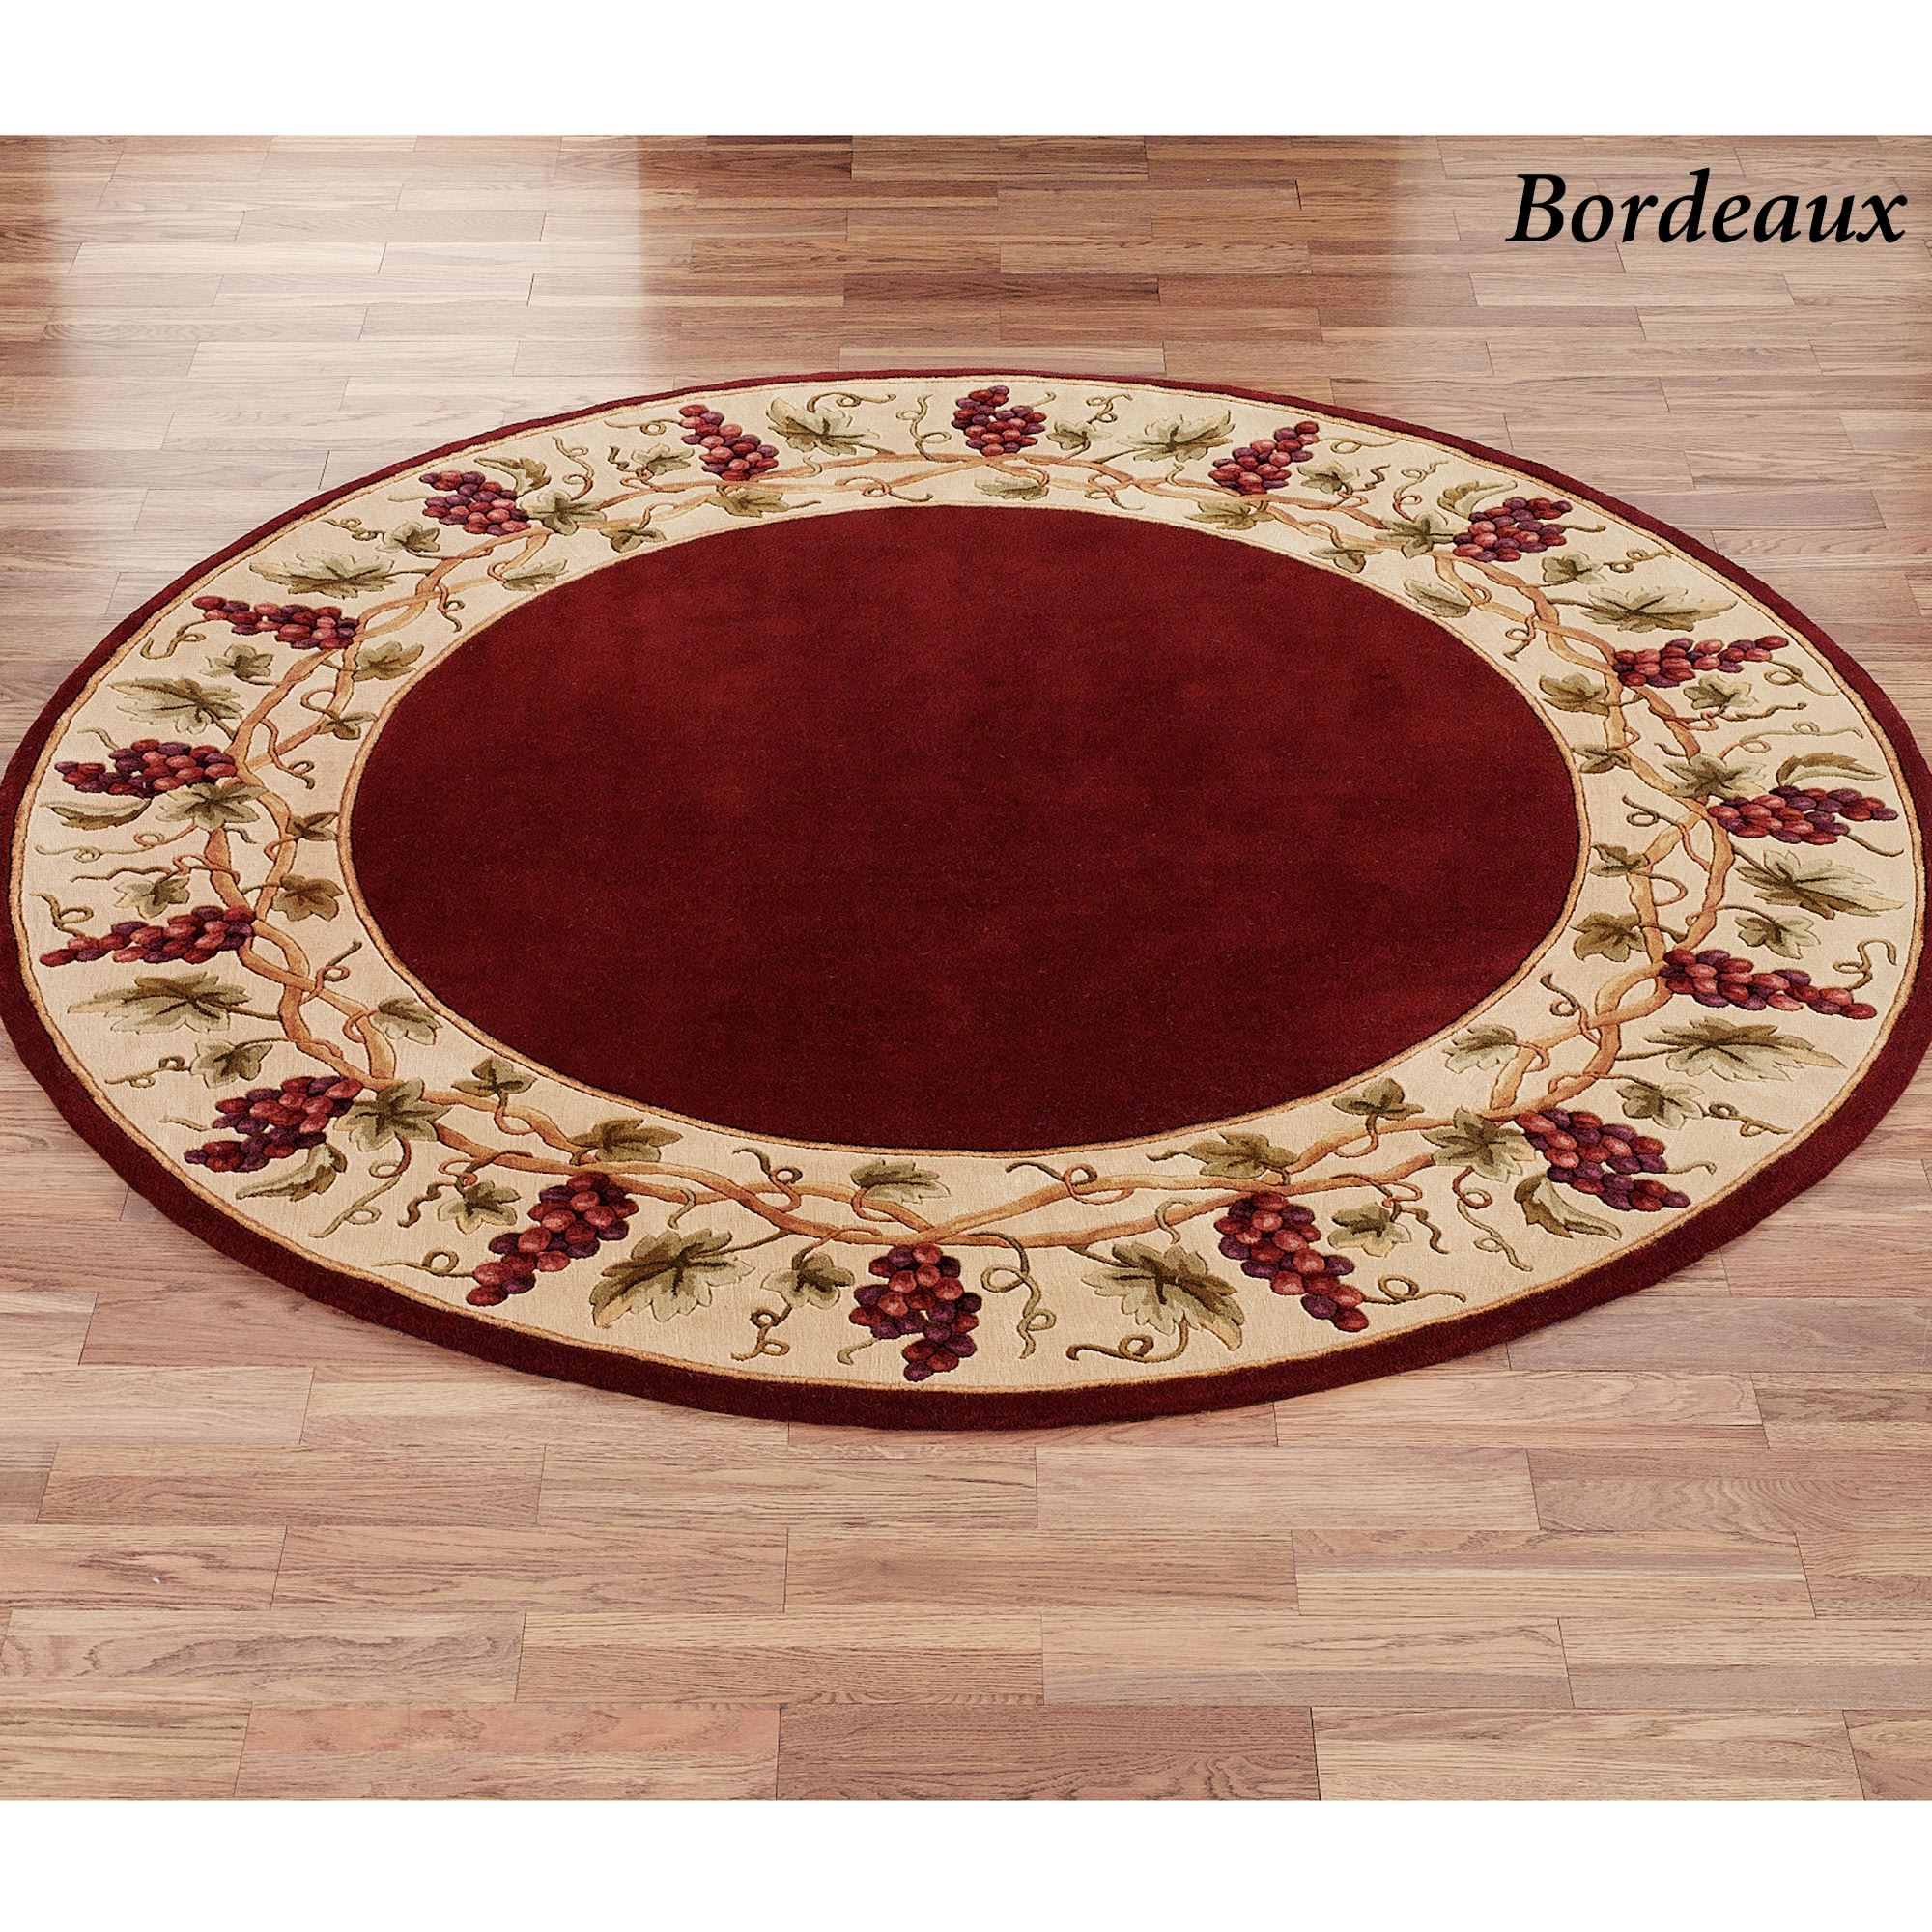 small grape design kitchen rugs.  Bordeaux Border Area Rug